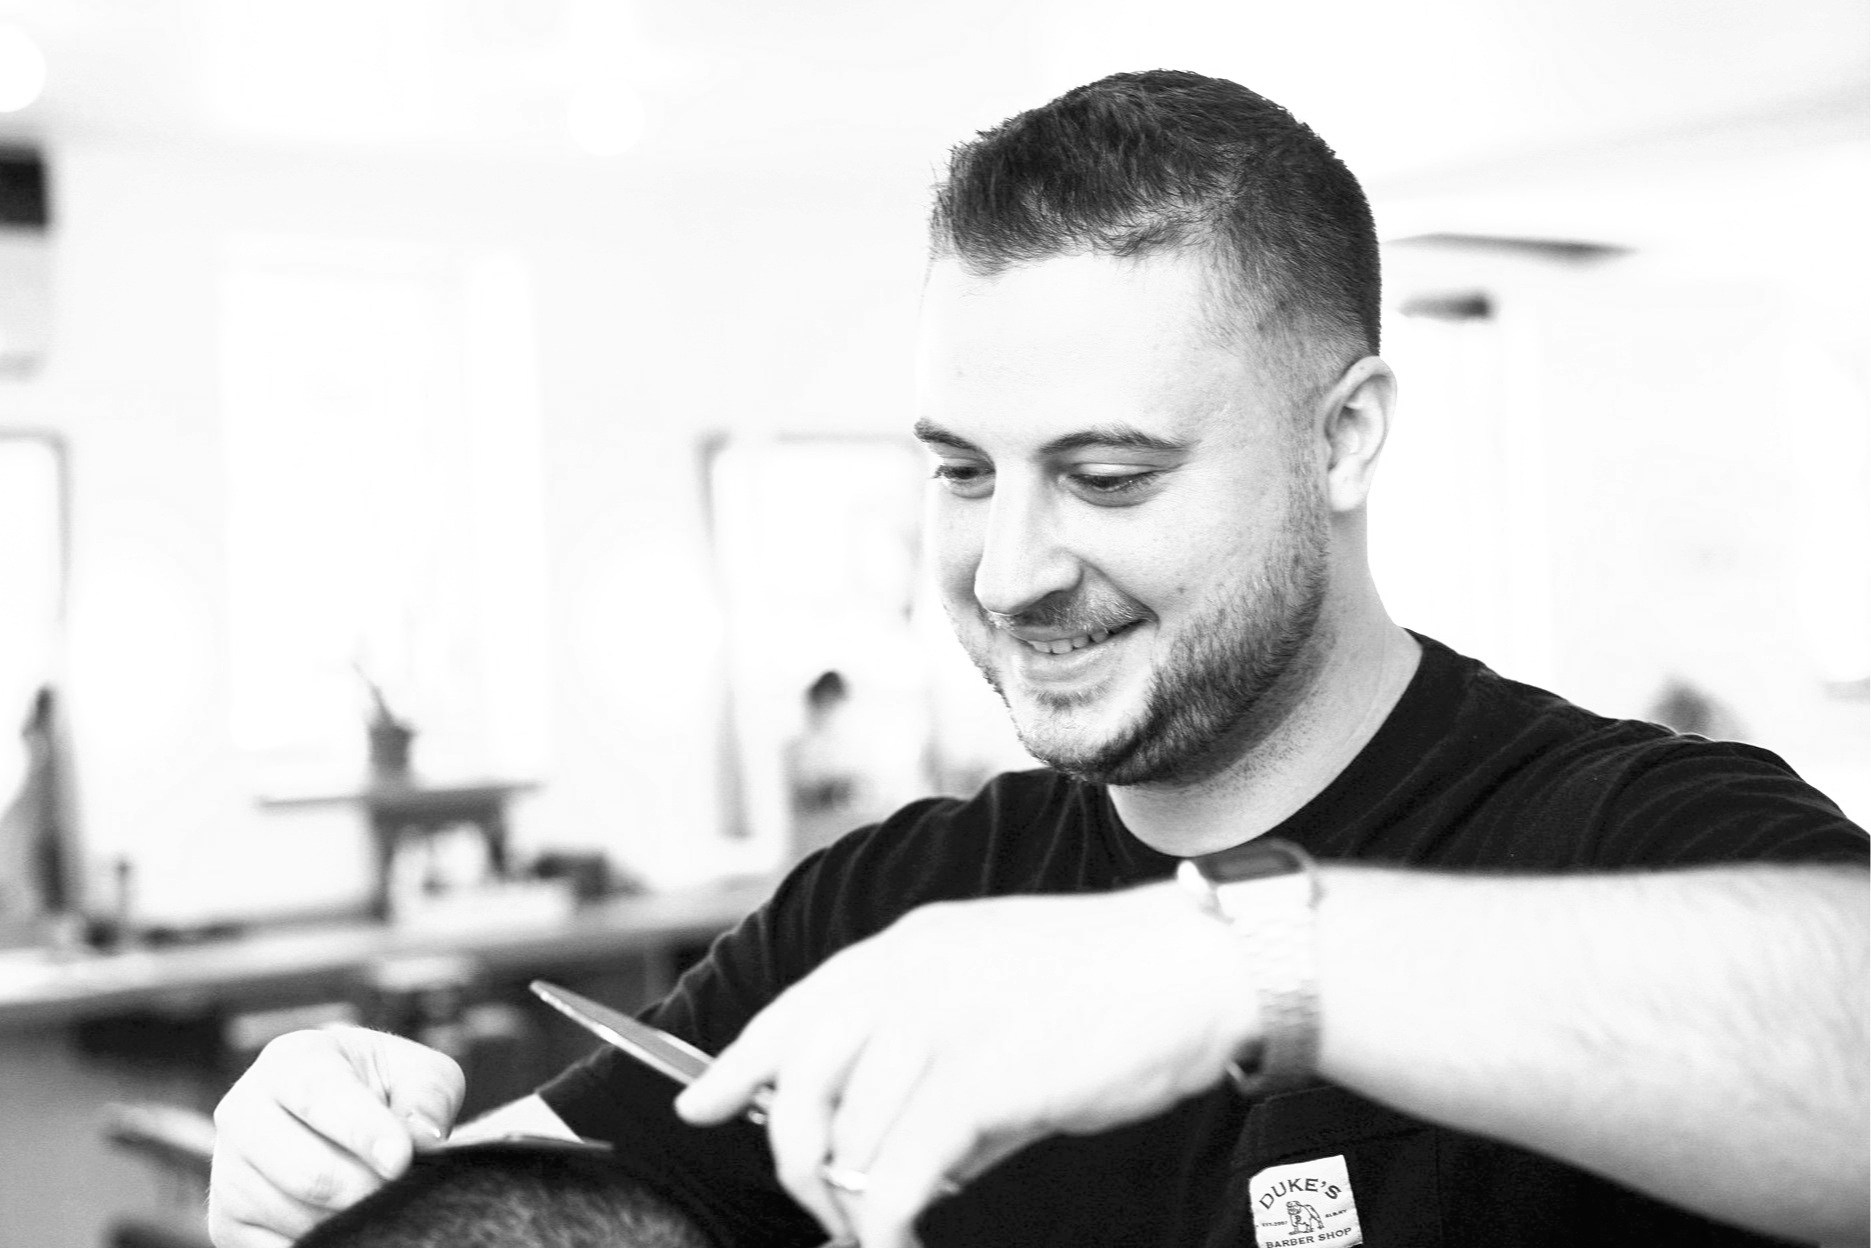 Ryan  …Connecticut native and graduate of A.B.I, Ryan is an avid NY sports fan with a passion for classic hair styles. Love's live music, New York pizza and playing pac man on his days off.